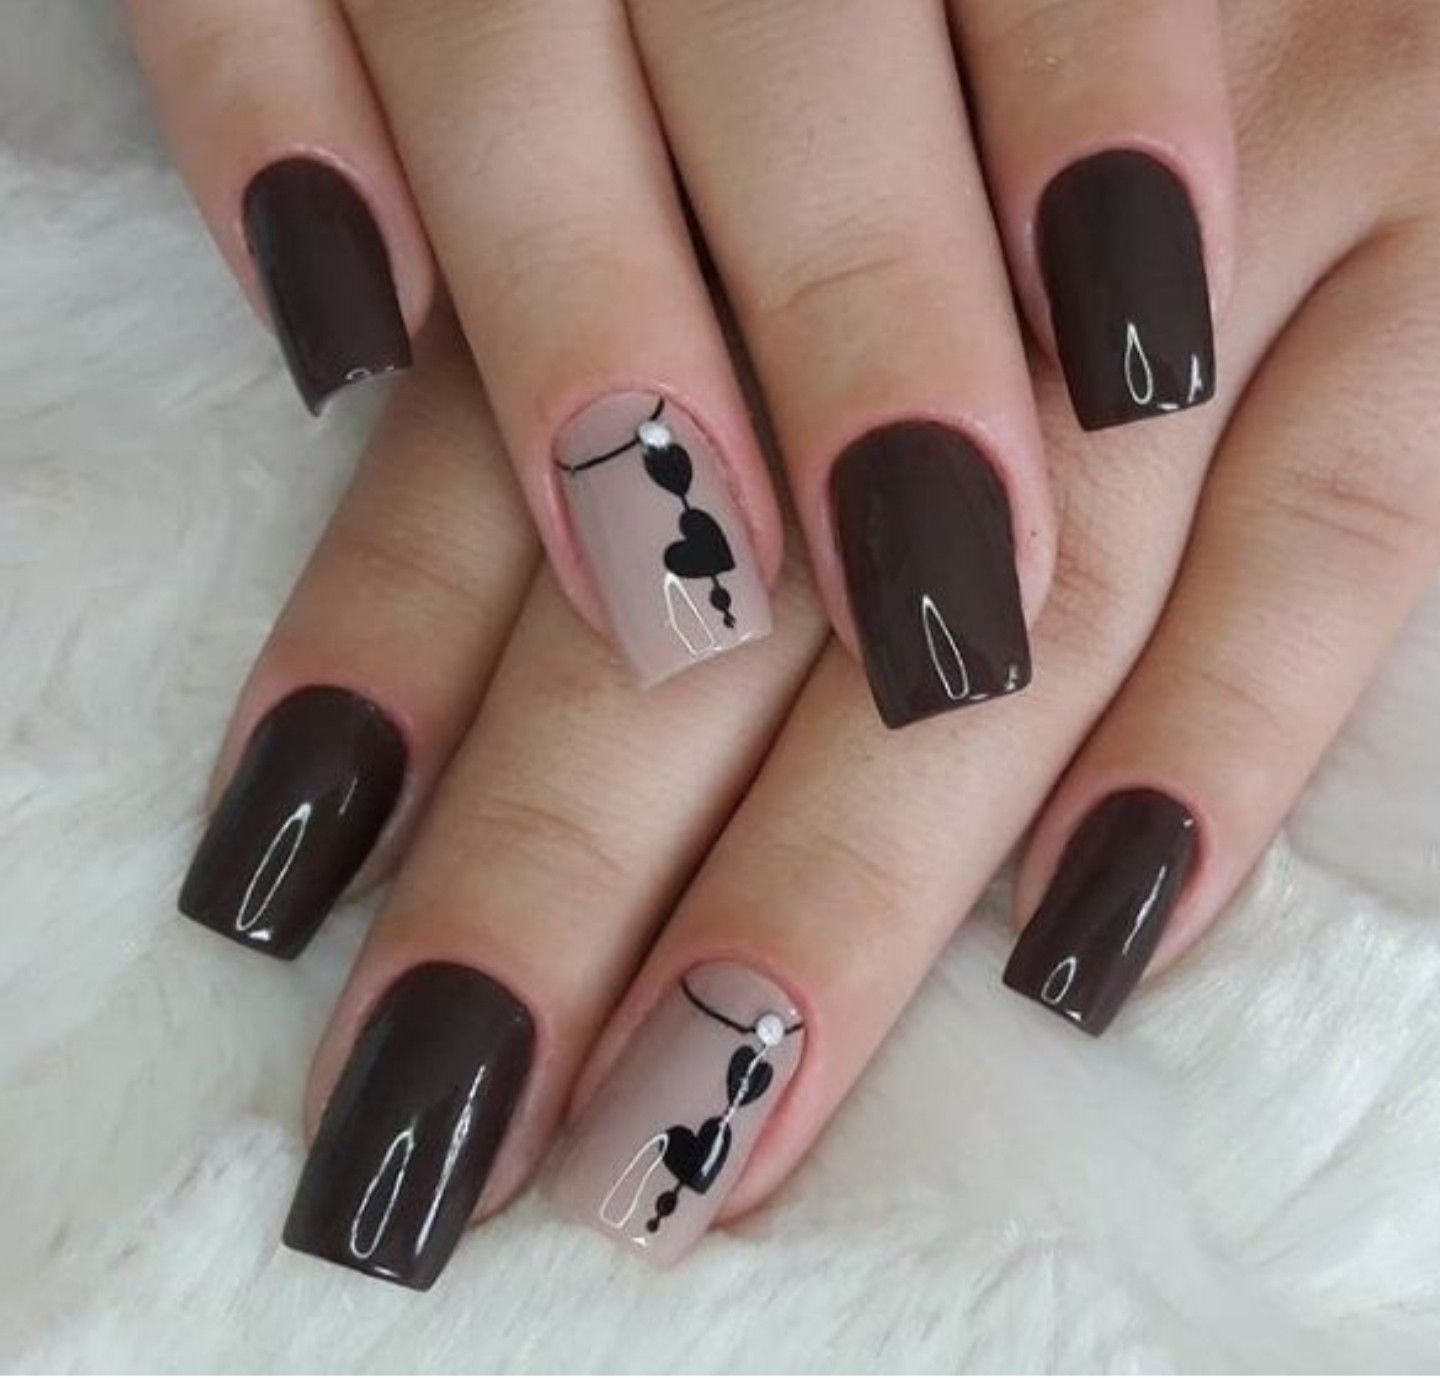 40 Top Amazing Gel Nail Art Of 2019 With Images Gelove Nehty Design Nehtu Nehty